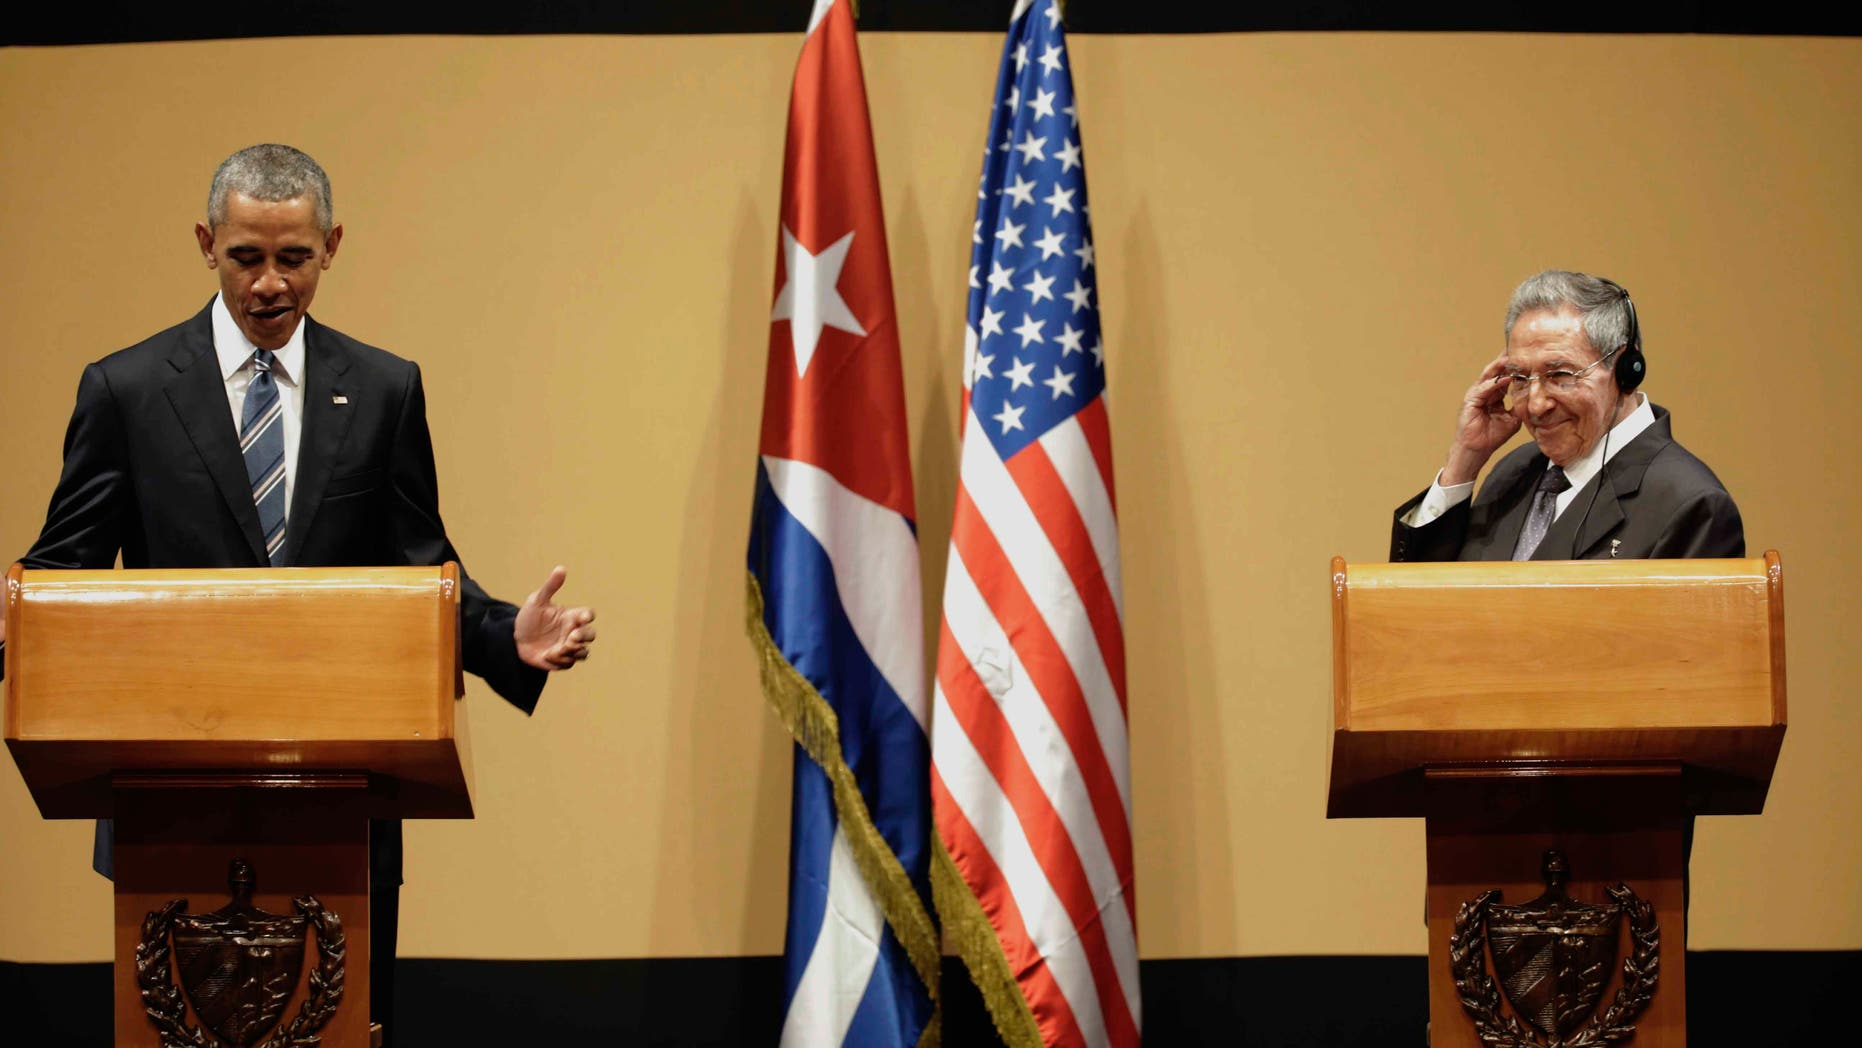 Presidents Obama and Castro during a joint statement in Havana, Cuba, Monday, March 21, 2016.